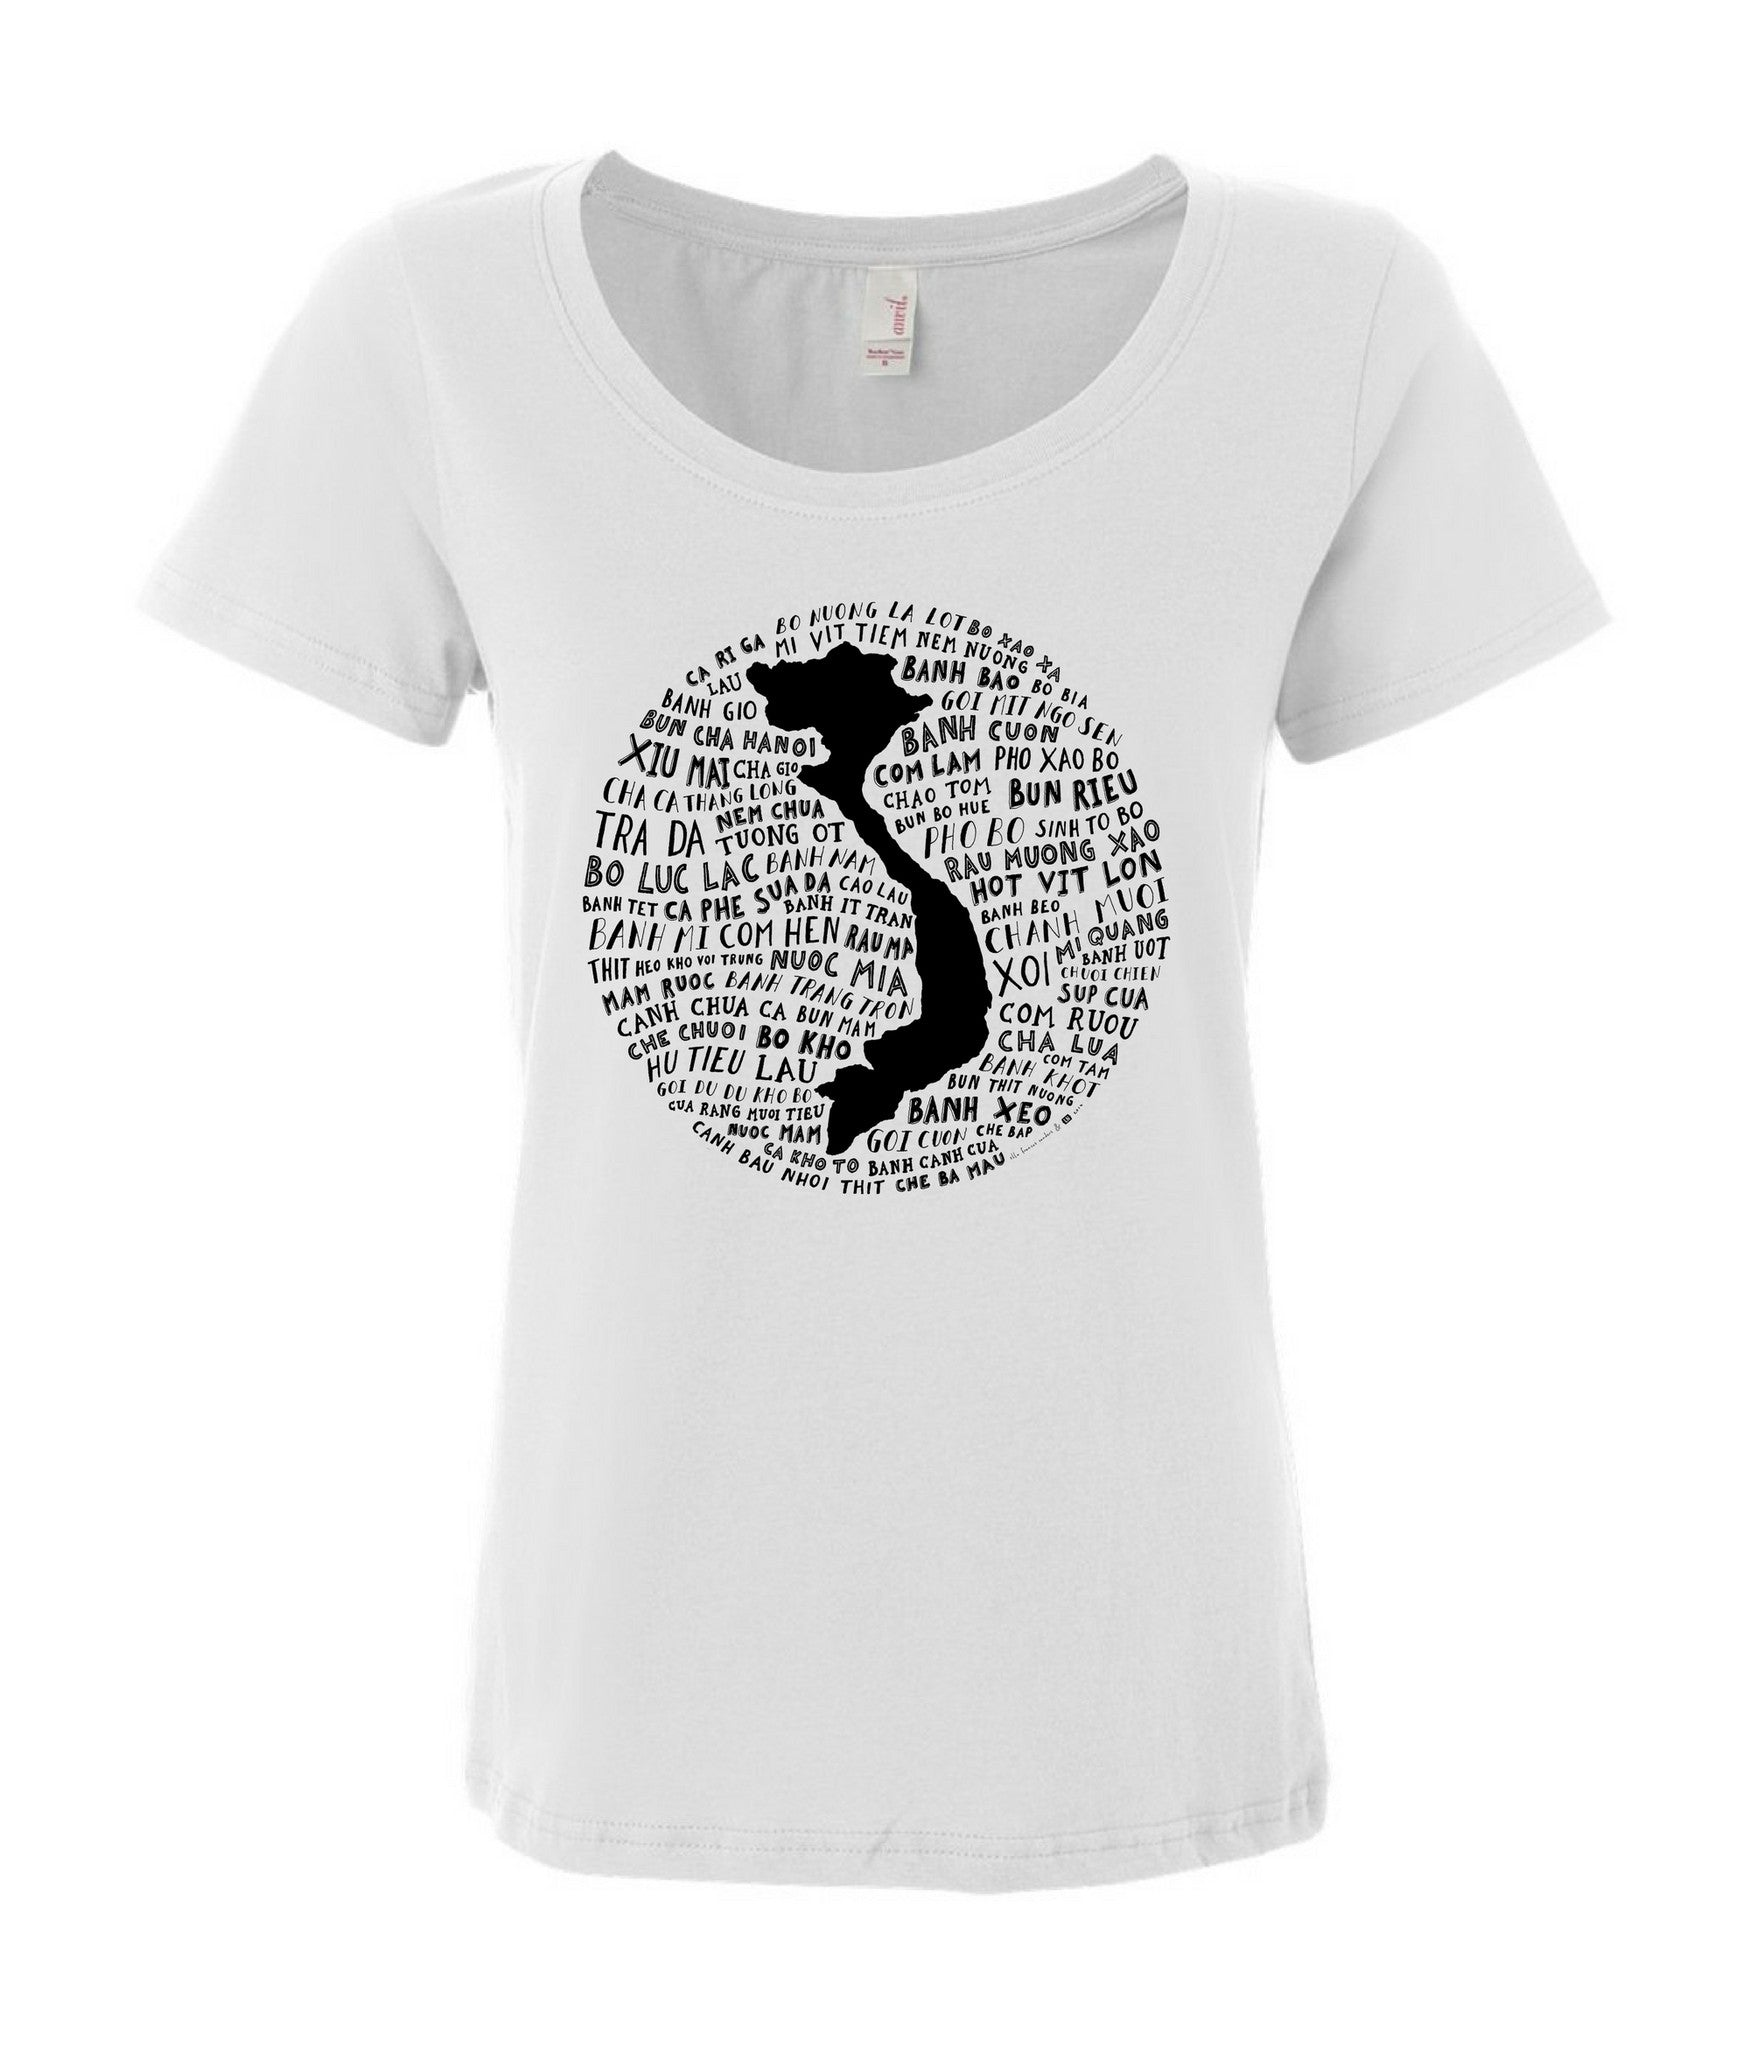 Food Map of Vietnam - Women's White Scoop T-Shirt